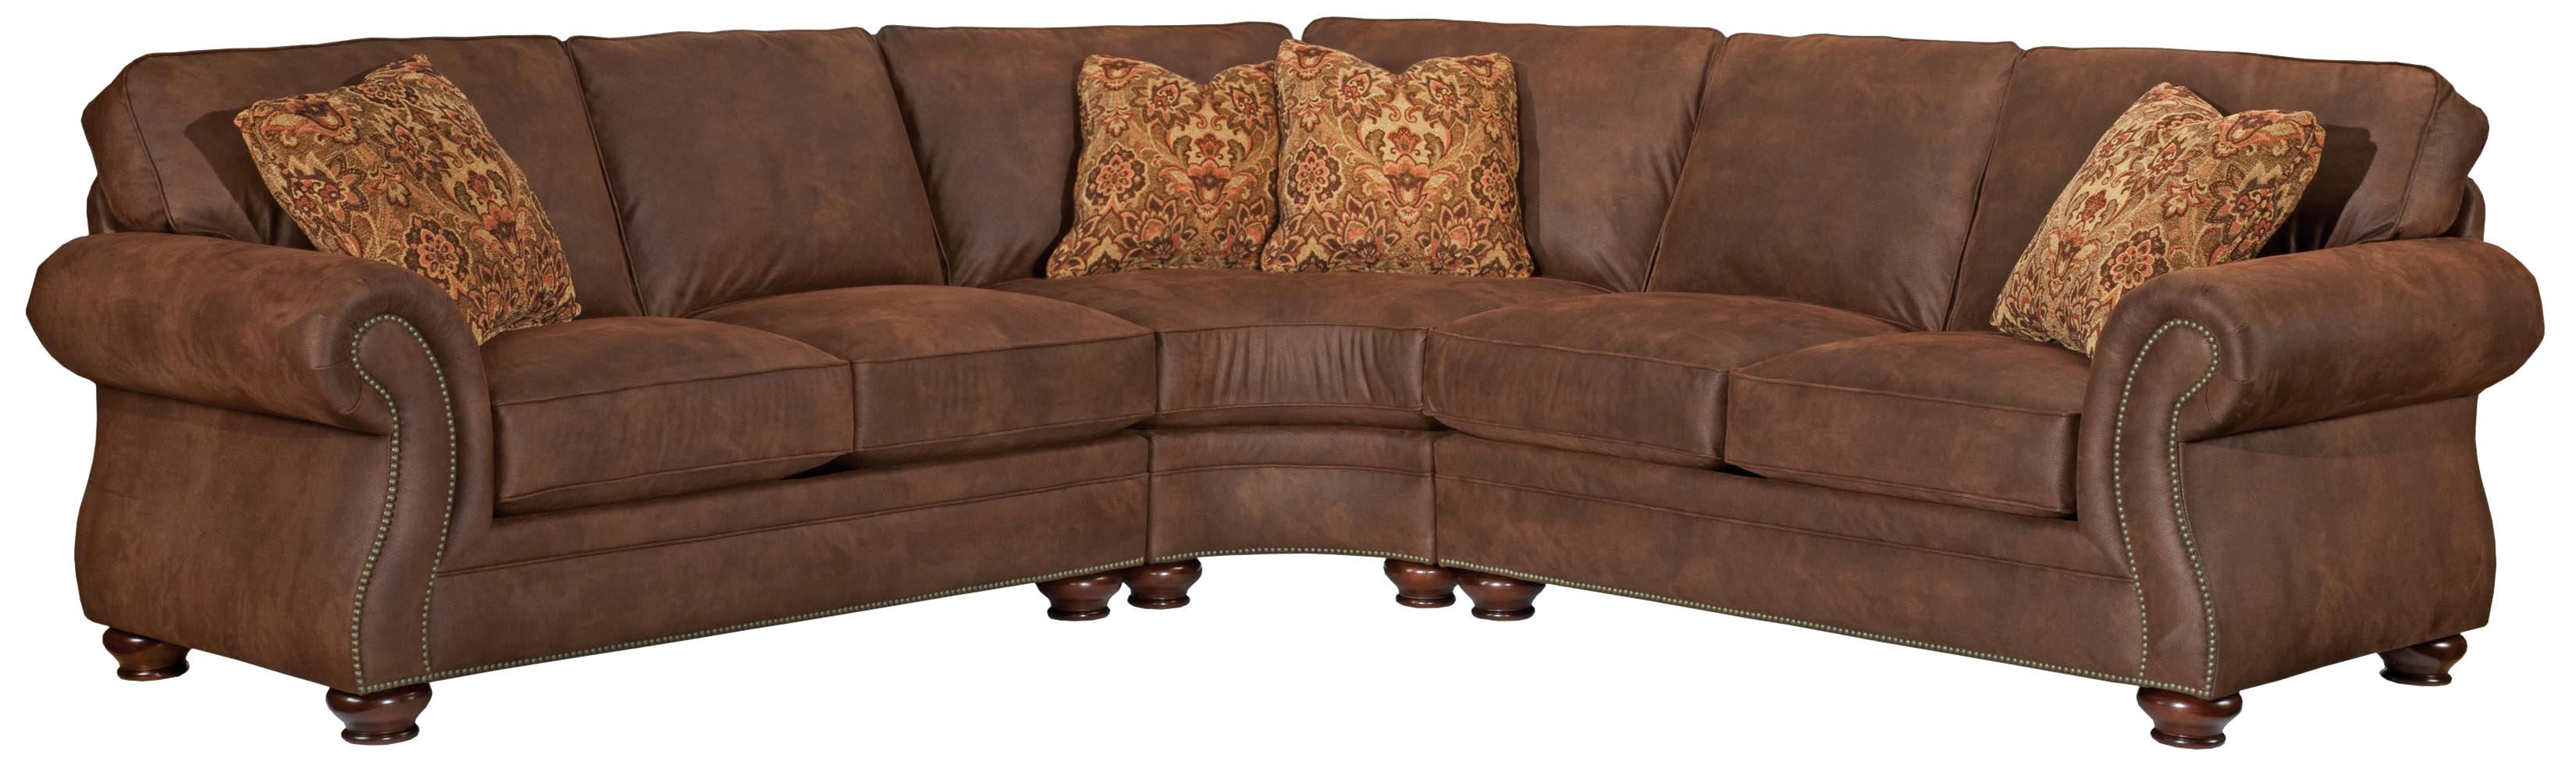 Great Broyhill Furniture Laramie 3 Piece Sectional Sofa   Item Number: 5080 2+8